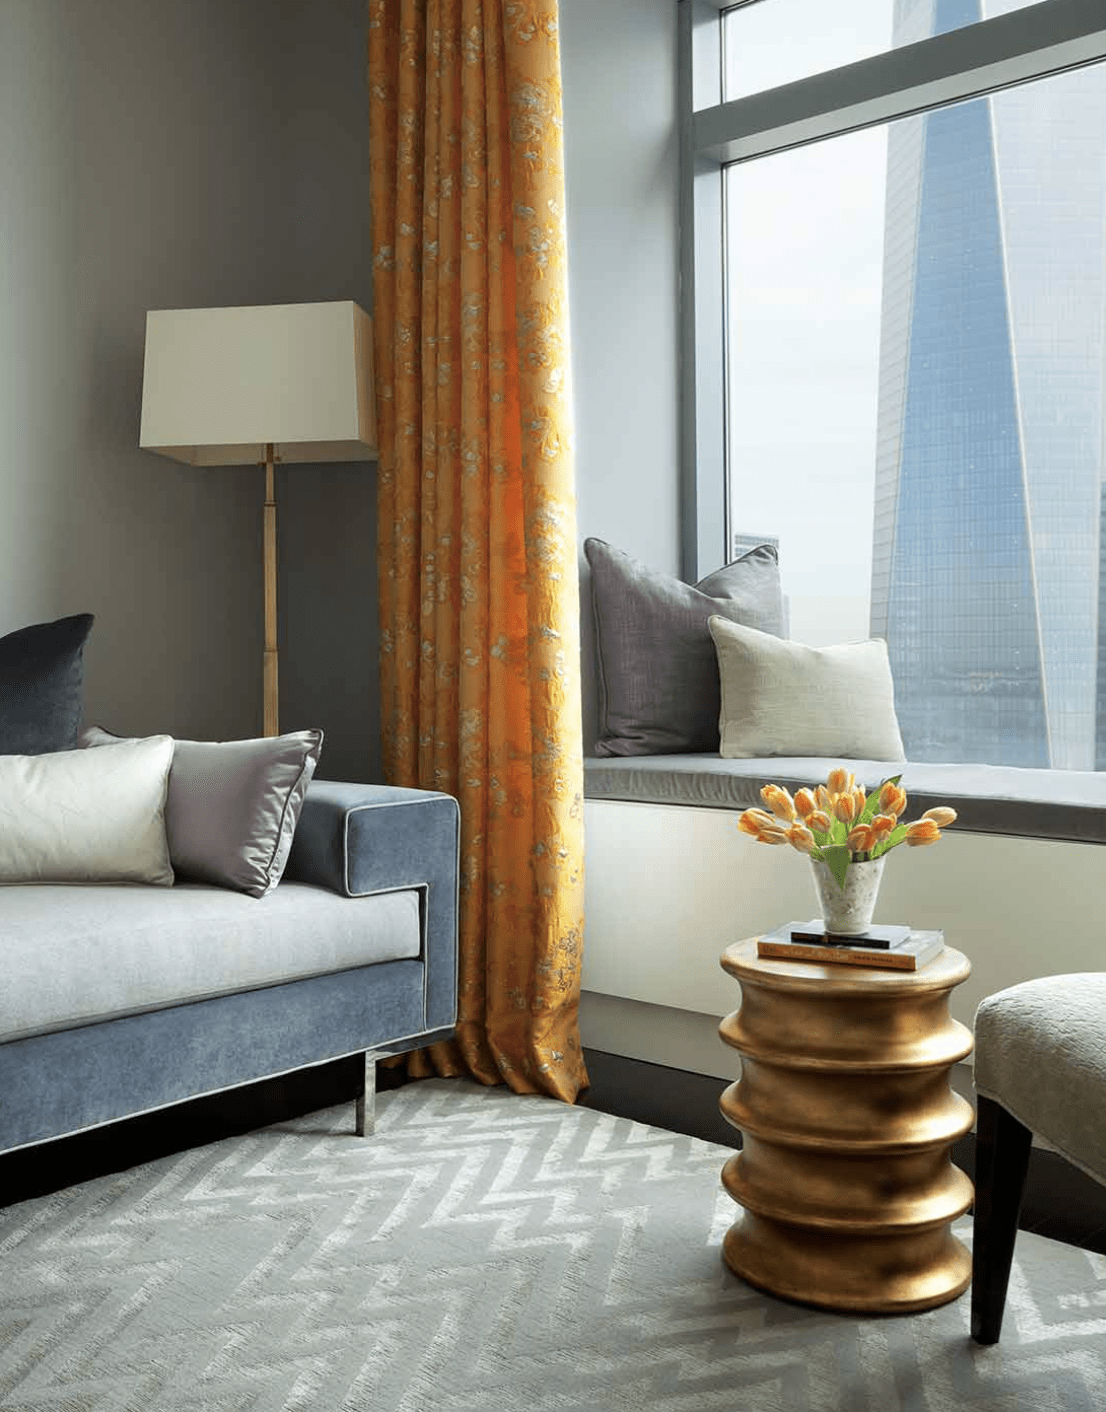 nyc upper west side buildings types and how to design for them